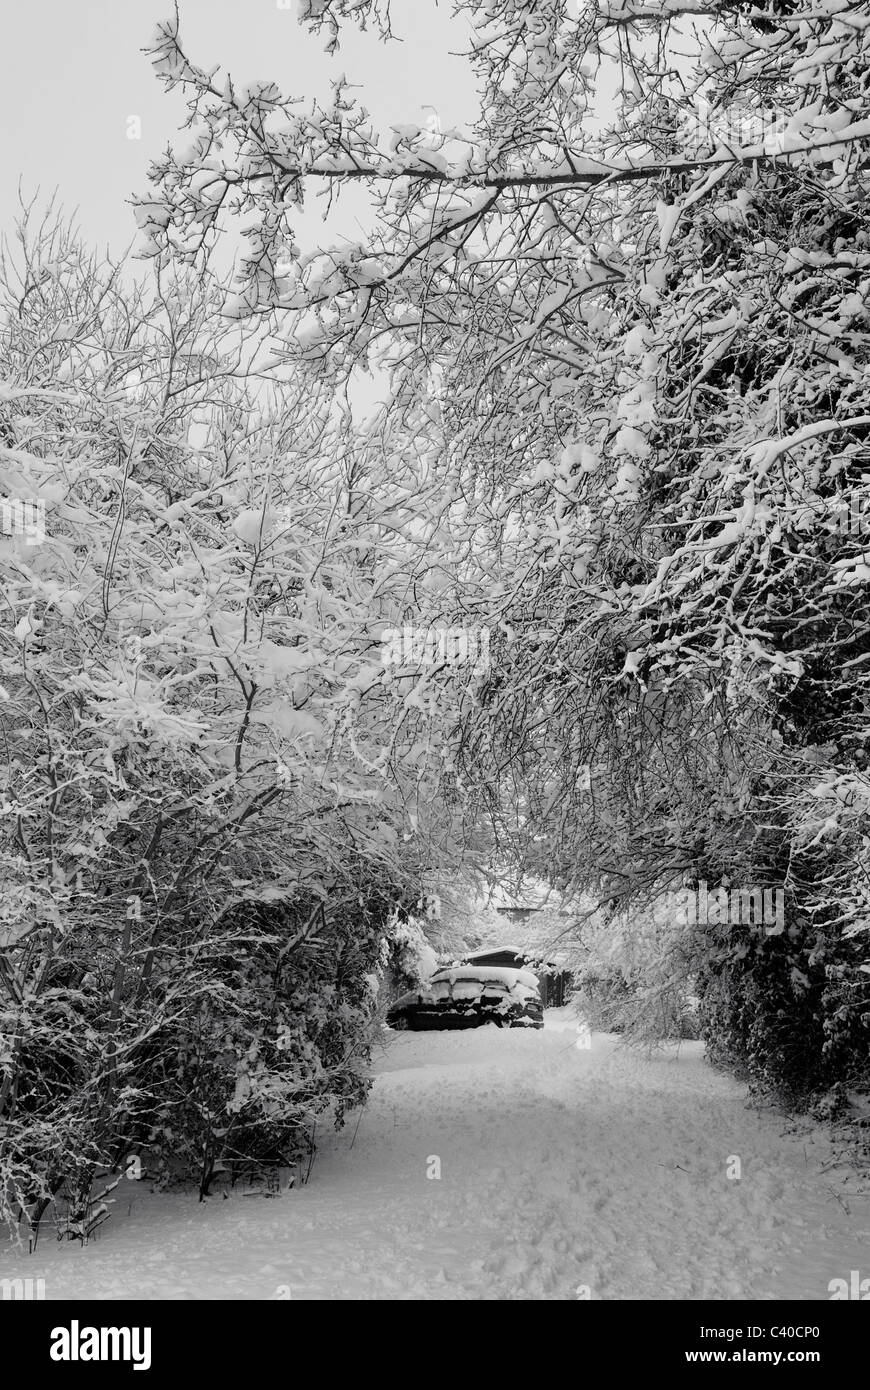 Photograph of car parked on the other side of the tress, near Farrindon way, Tadley, England, UK, United Kingdom. - Stock Image